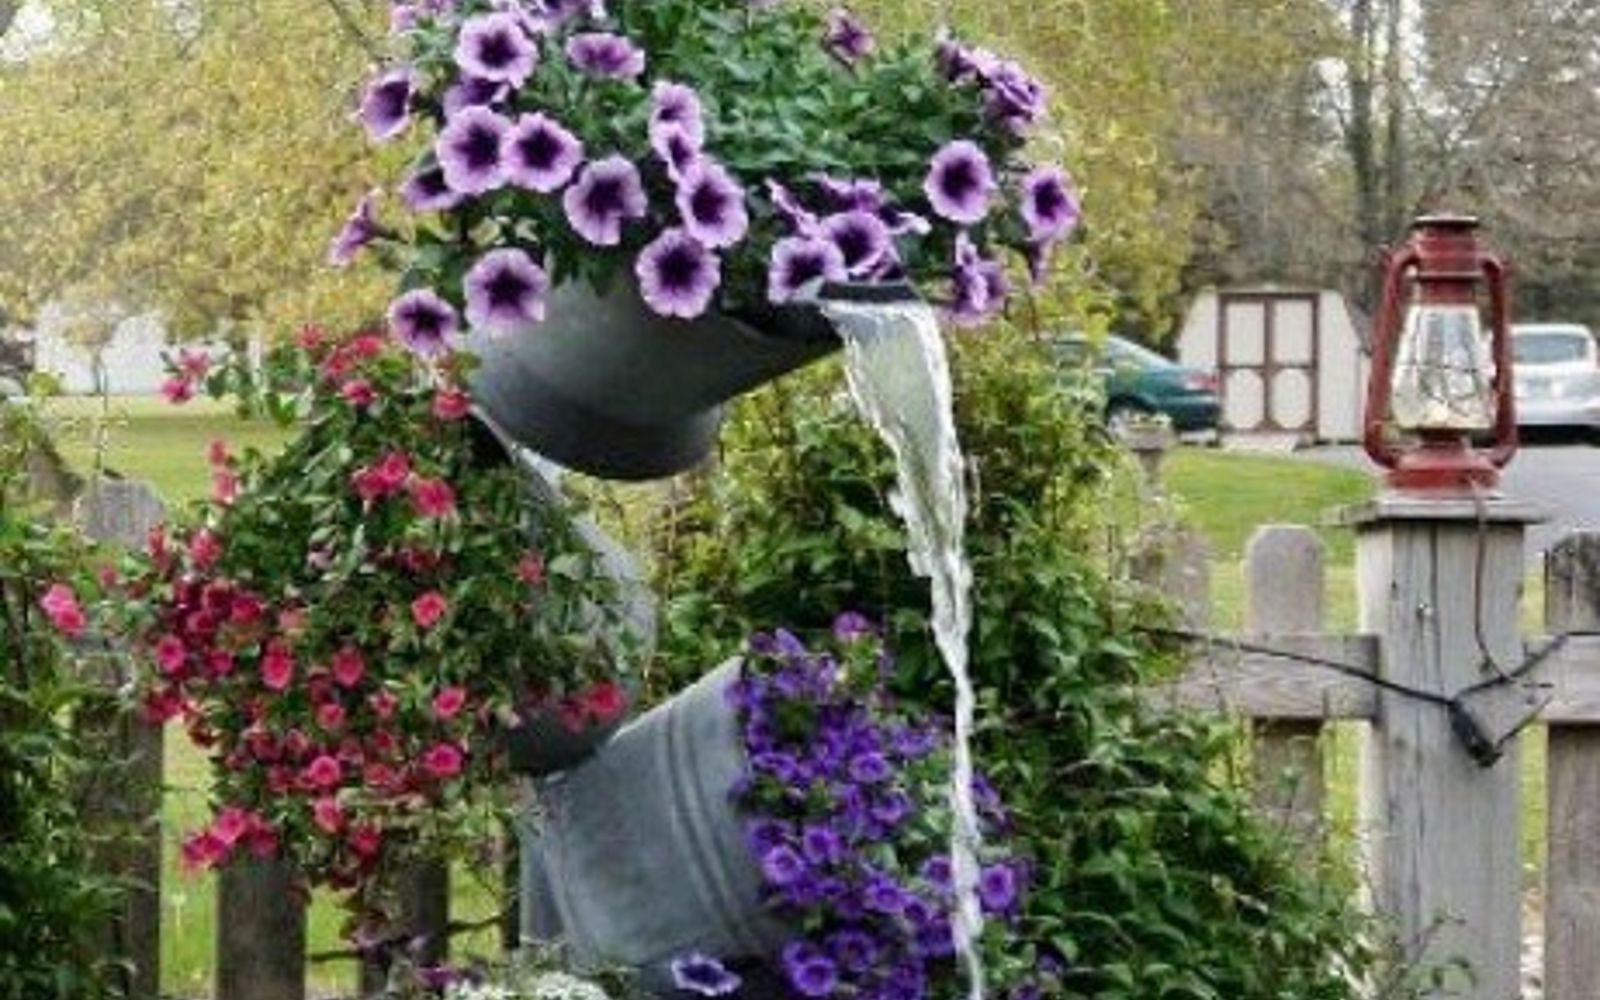 s 10 mini water features to add zen to your garden, outdoor living, ponds water features, Stack flower filled buckets into a tower